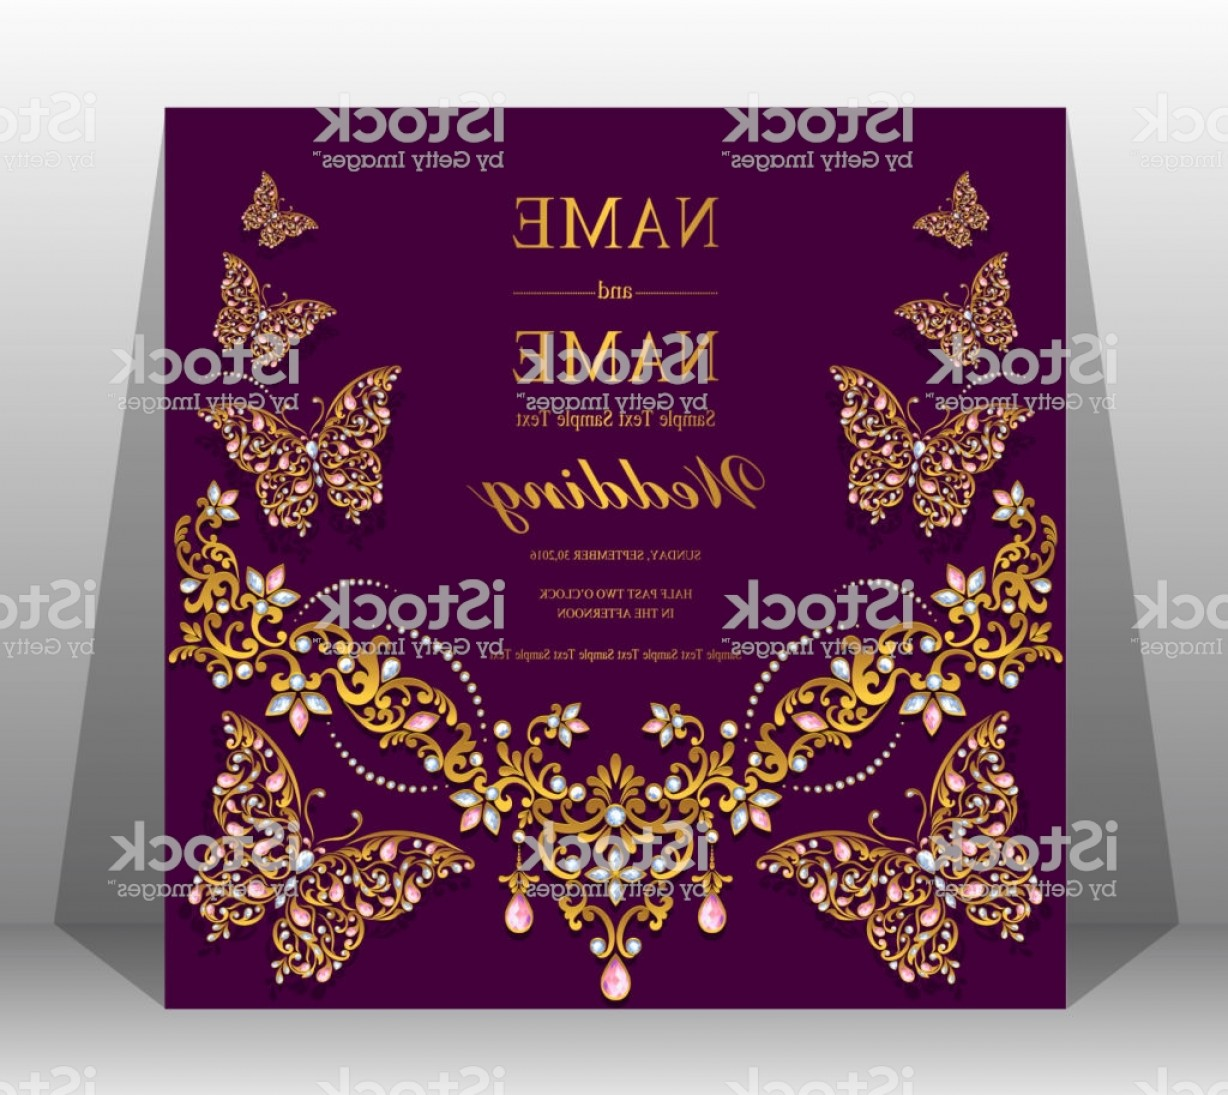 Lilac Wedding Vectors: Indian Wedding Invitation Card Templates With Gold Patterned And Crystals On Paper Gm